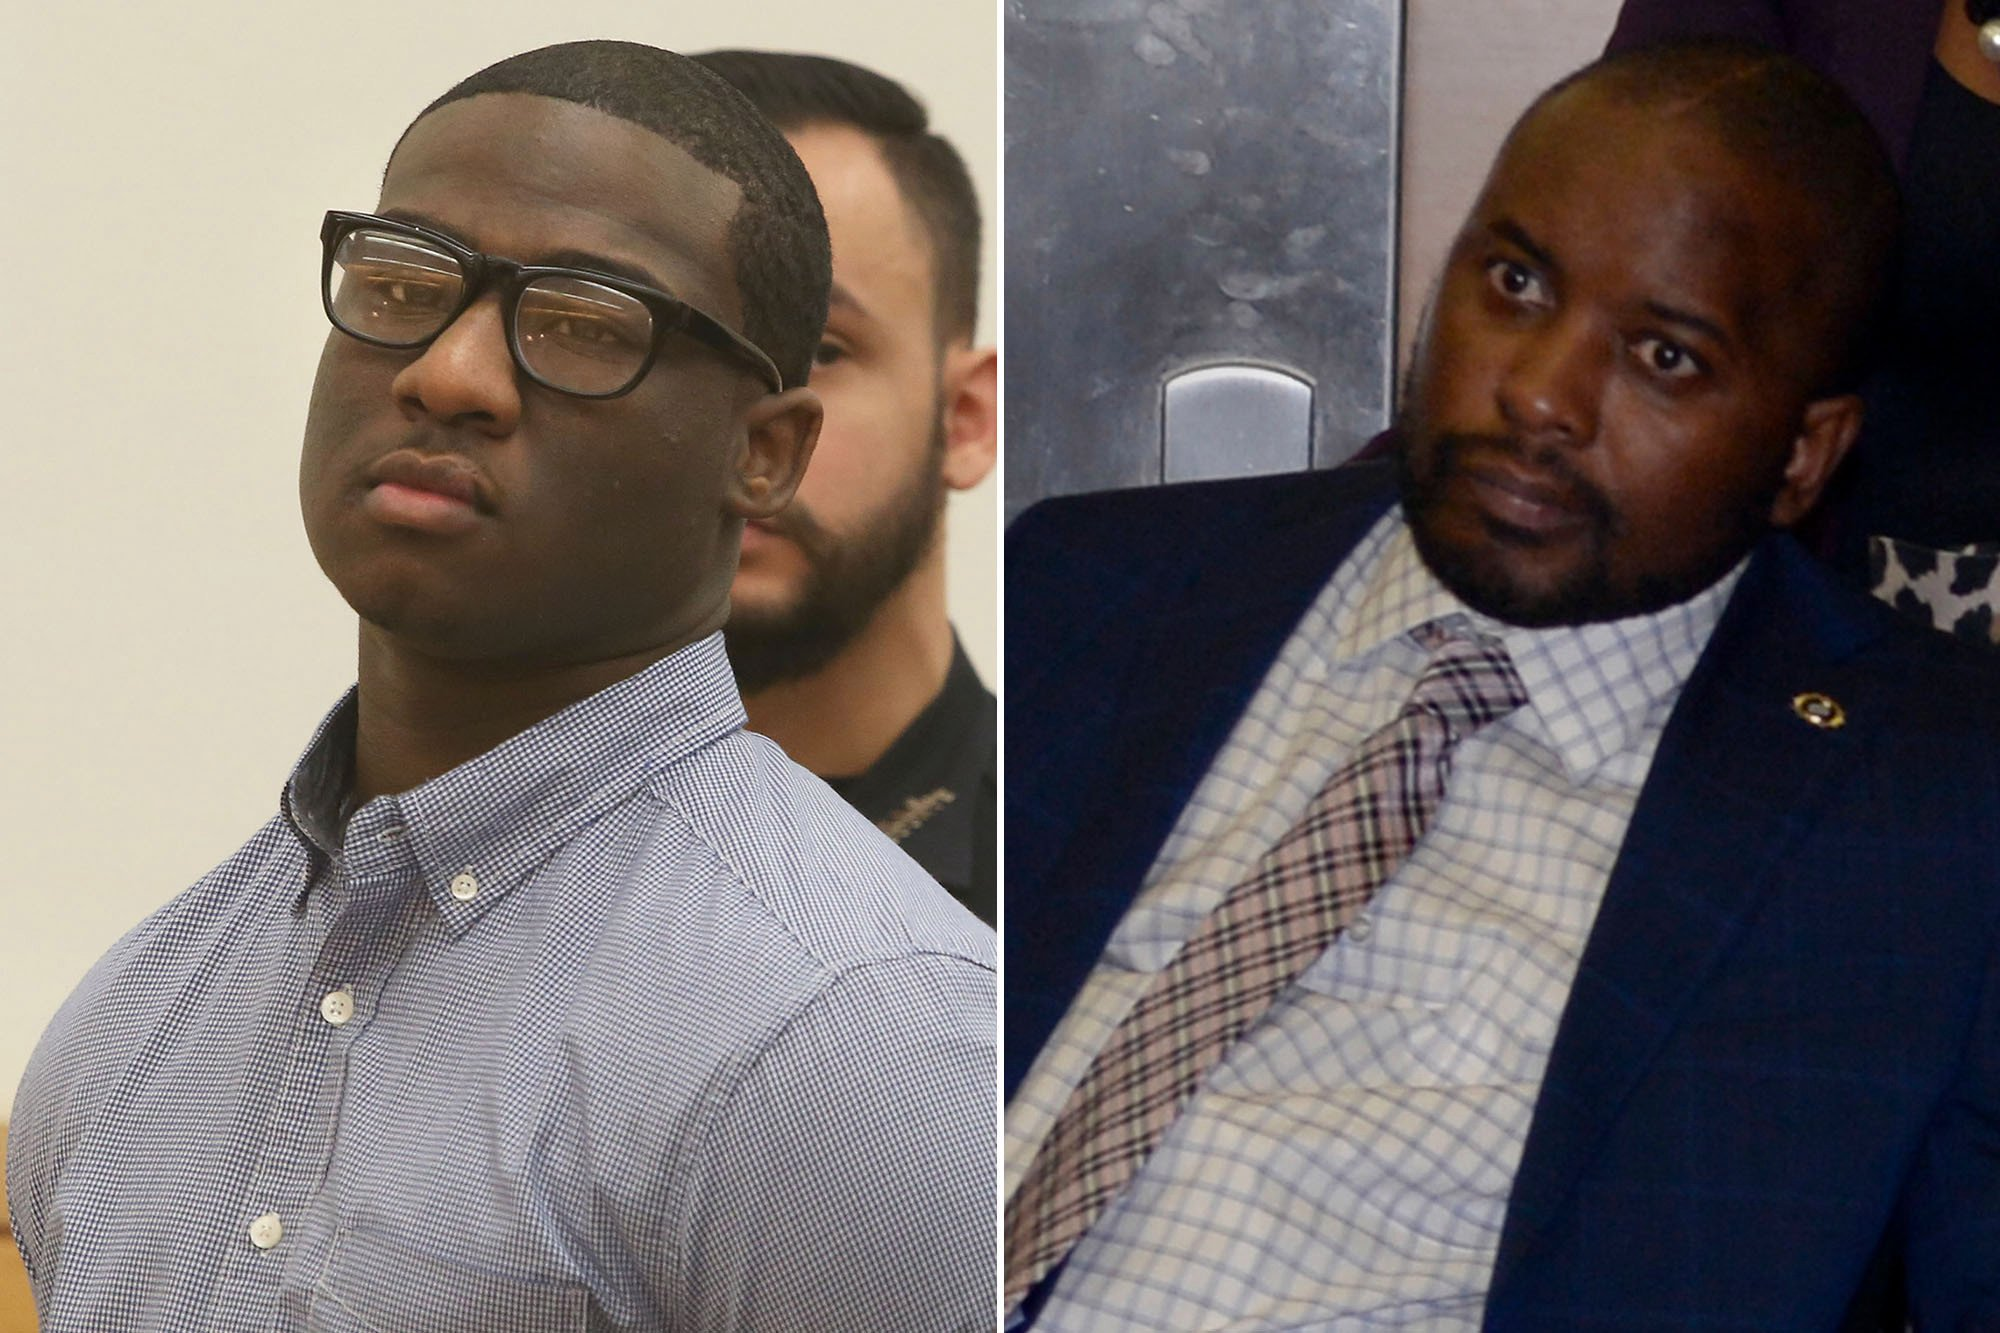 Teen gangbanger sentenced for dragging NYPD detective with stolen car